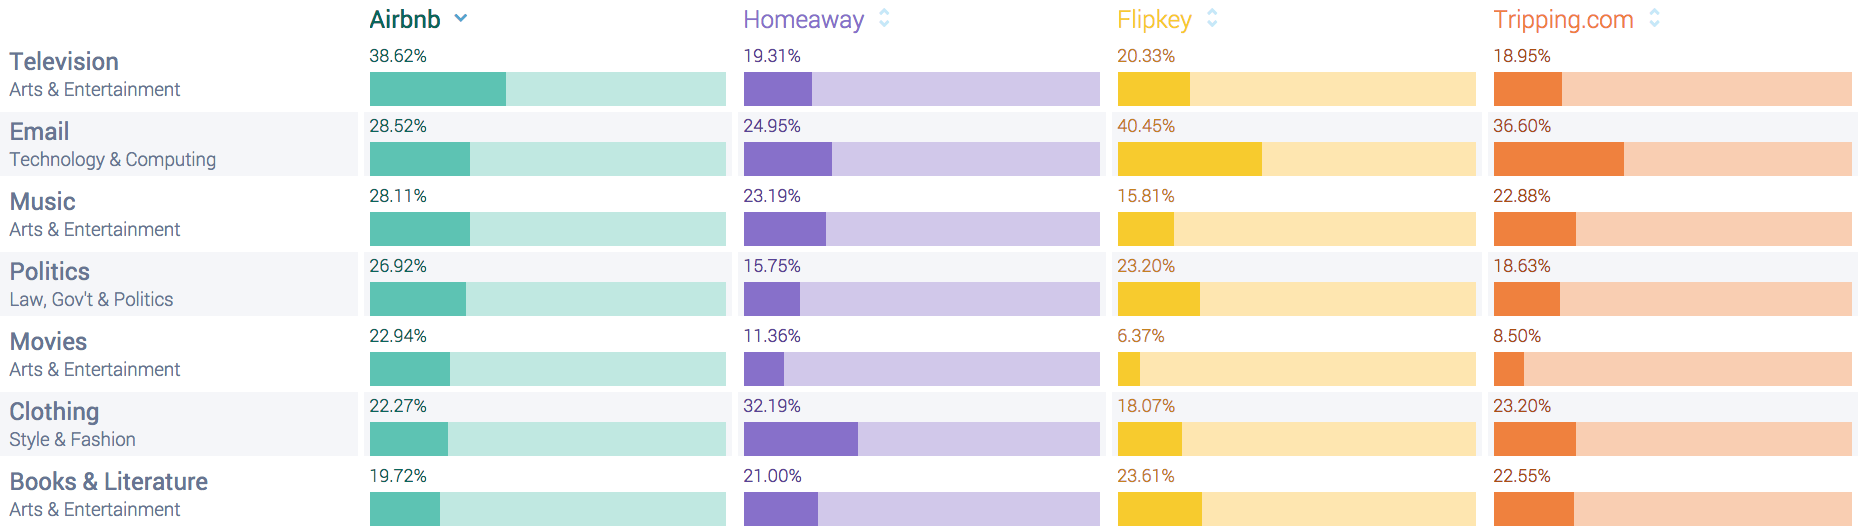 Social listening data Airbnb competitors interests